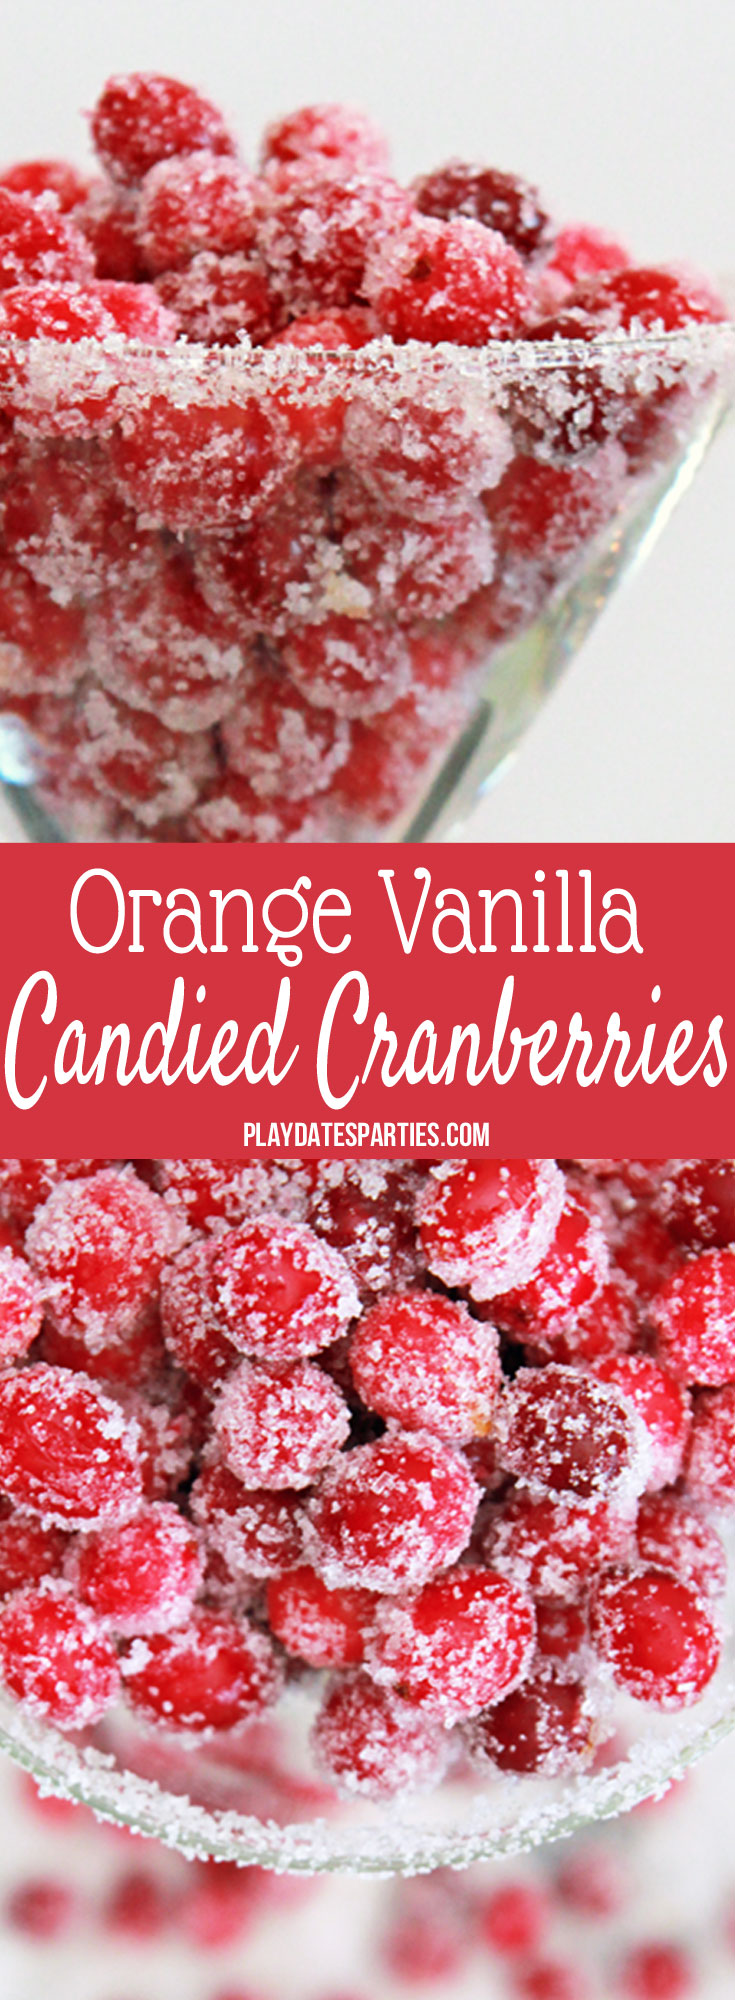 Orange vanilla candied cranberries are too good to pass up! This #holiday #recipe is the perfect combination of sweet and sour...it's so good everyone in the family will be asking for more!